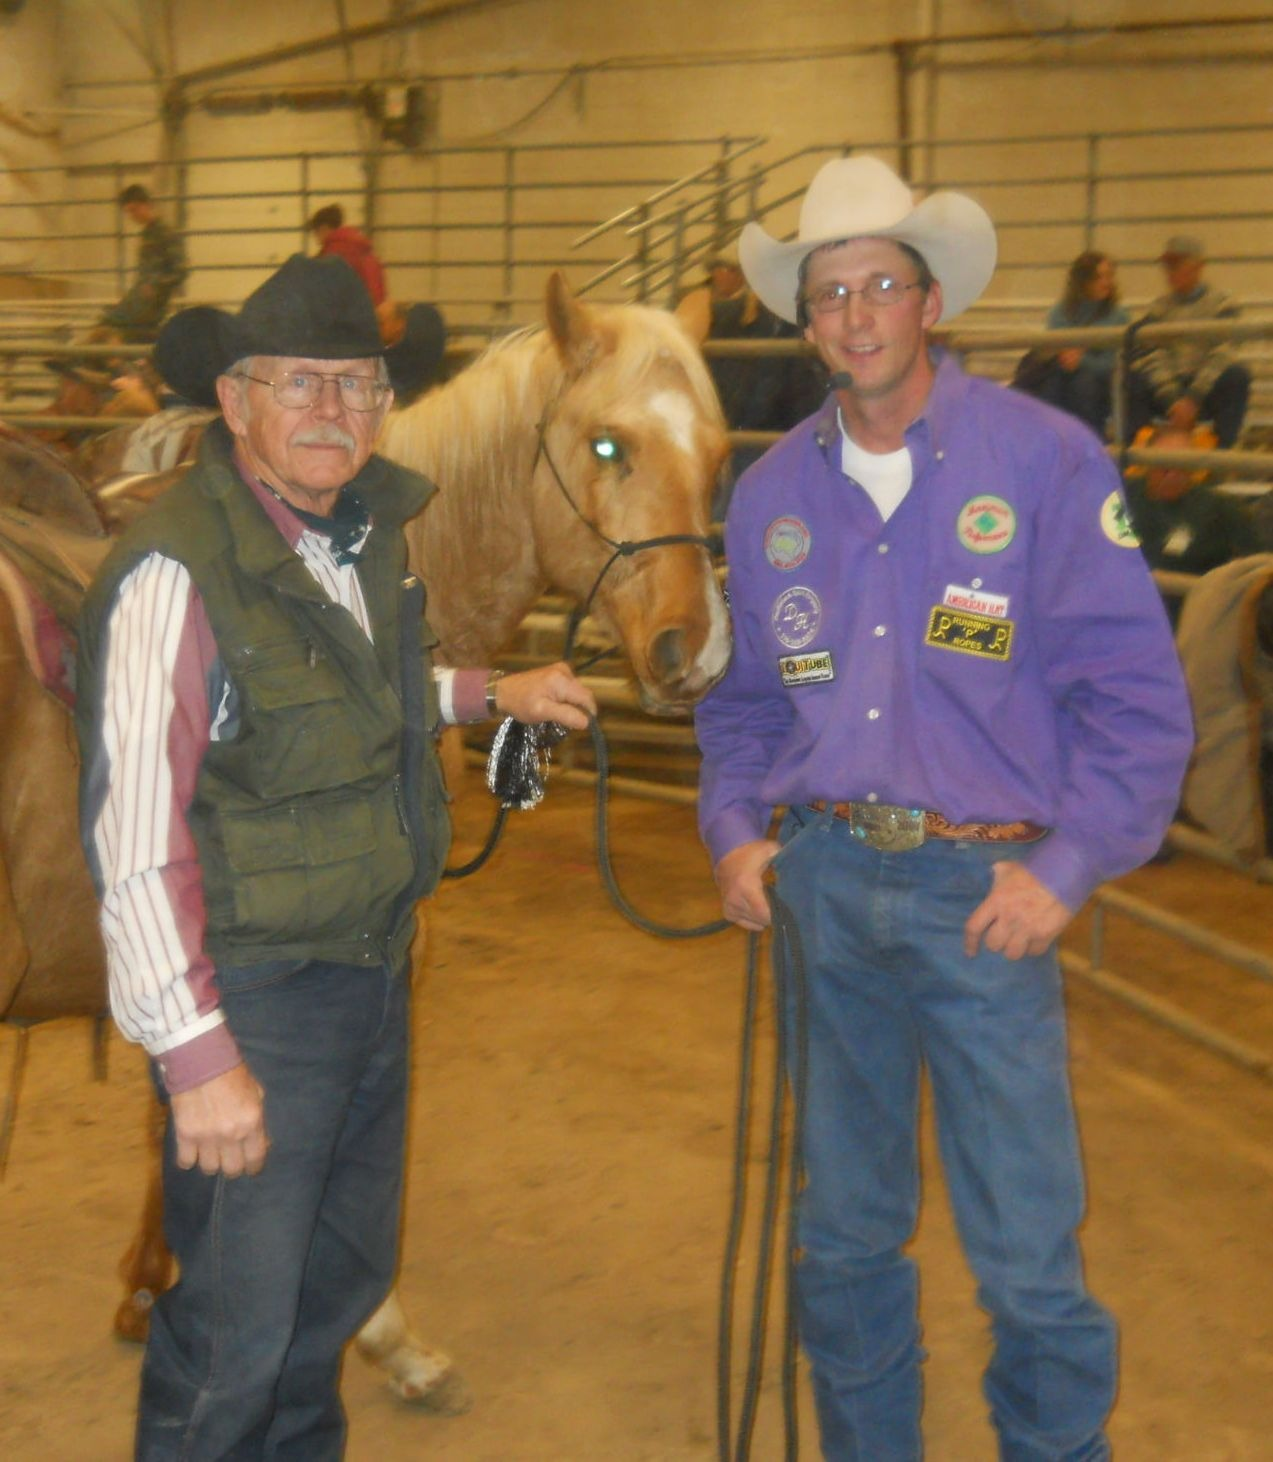 Mike Mikos, Eskridge, provided the palomino Quarter Horse that Scott Daily, Arkansas City, used in one of his colt-starting sessions at the Topeka Farm Show.